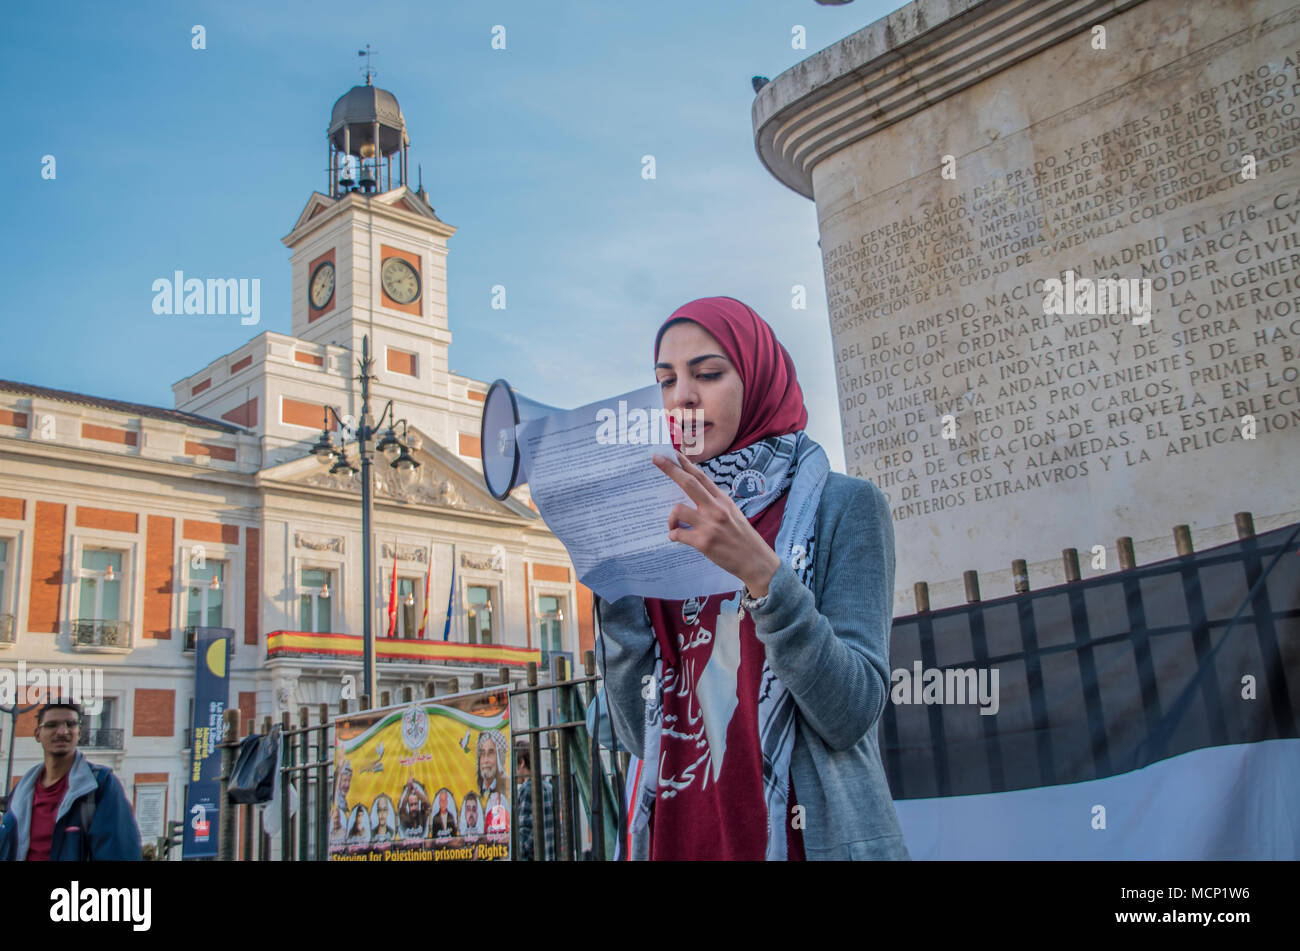 Madrid, Spain. 17th Apr, 2018. Madrid citizens protest for the Palestinian prisoners for Siria on the International Day for Solidarity of Political prisoners. Credit: Lora Grigorova/Alamy Live News Stock Photo